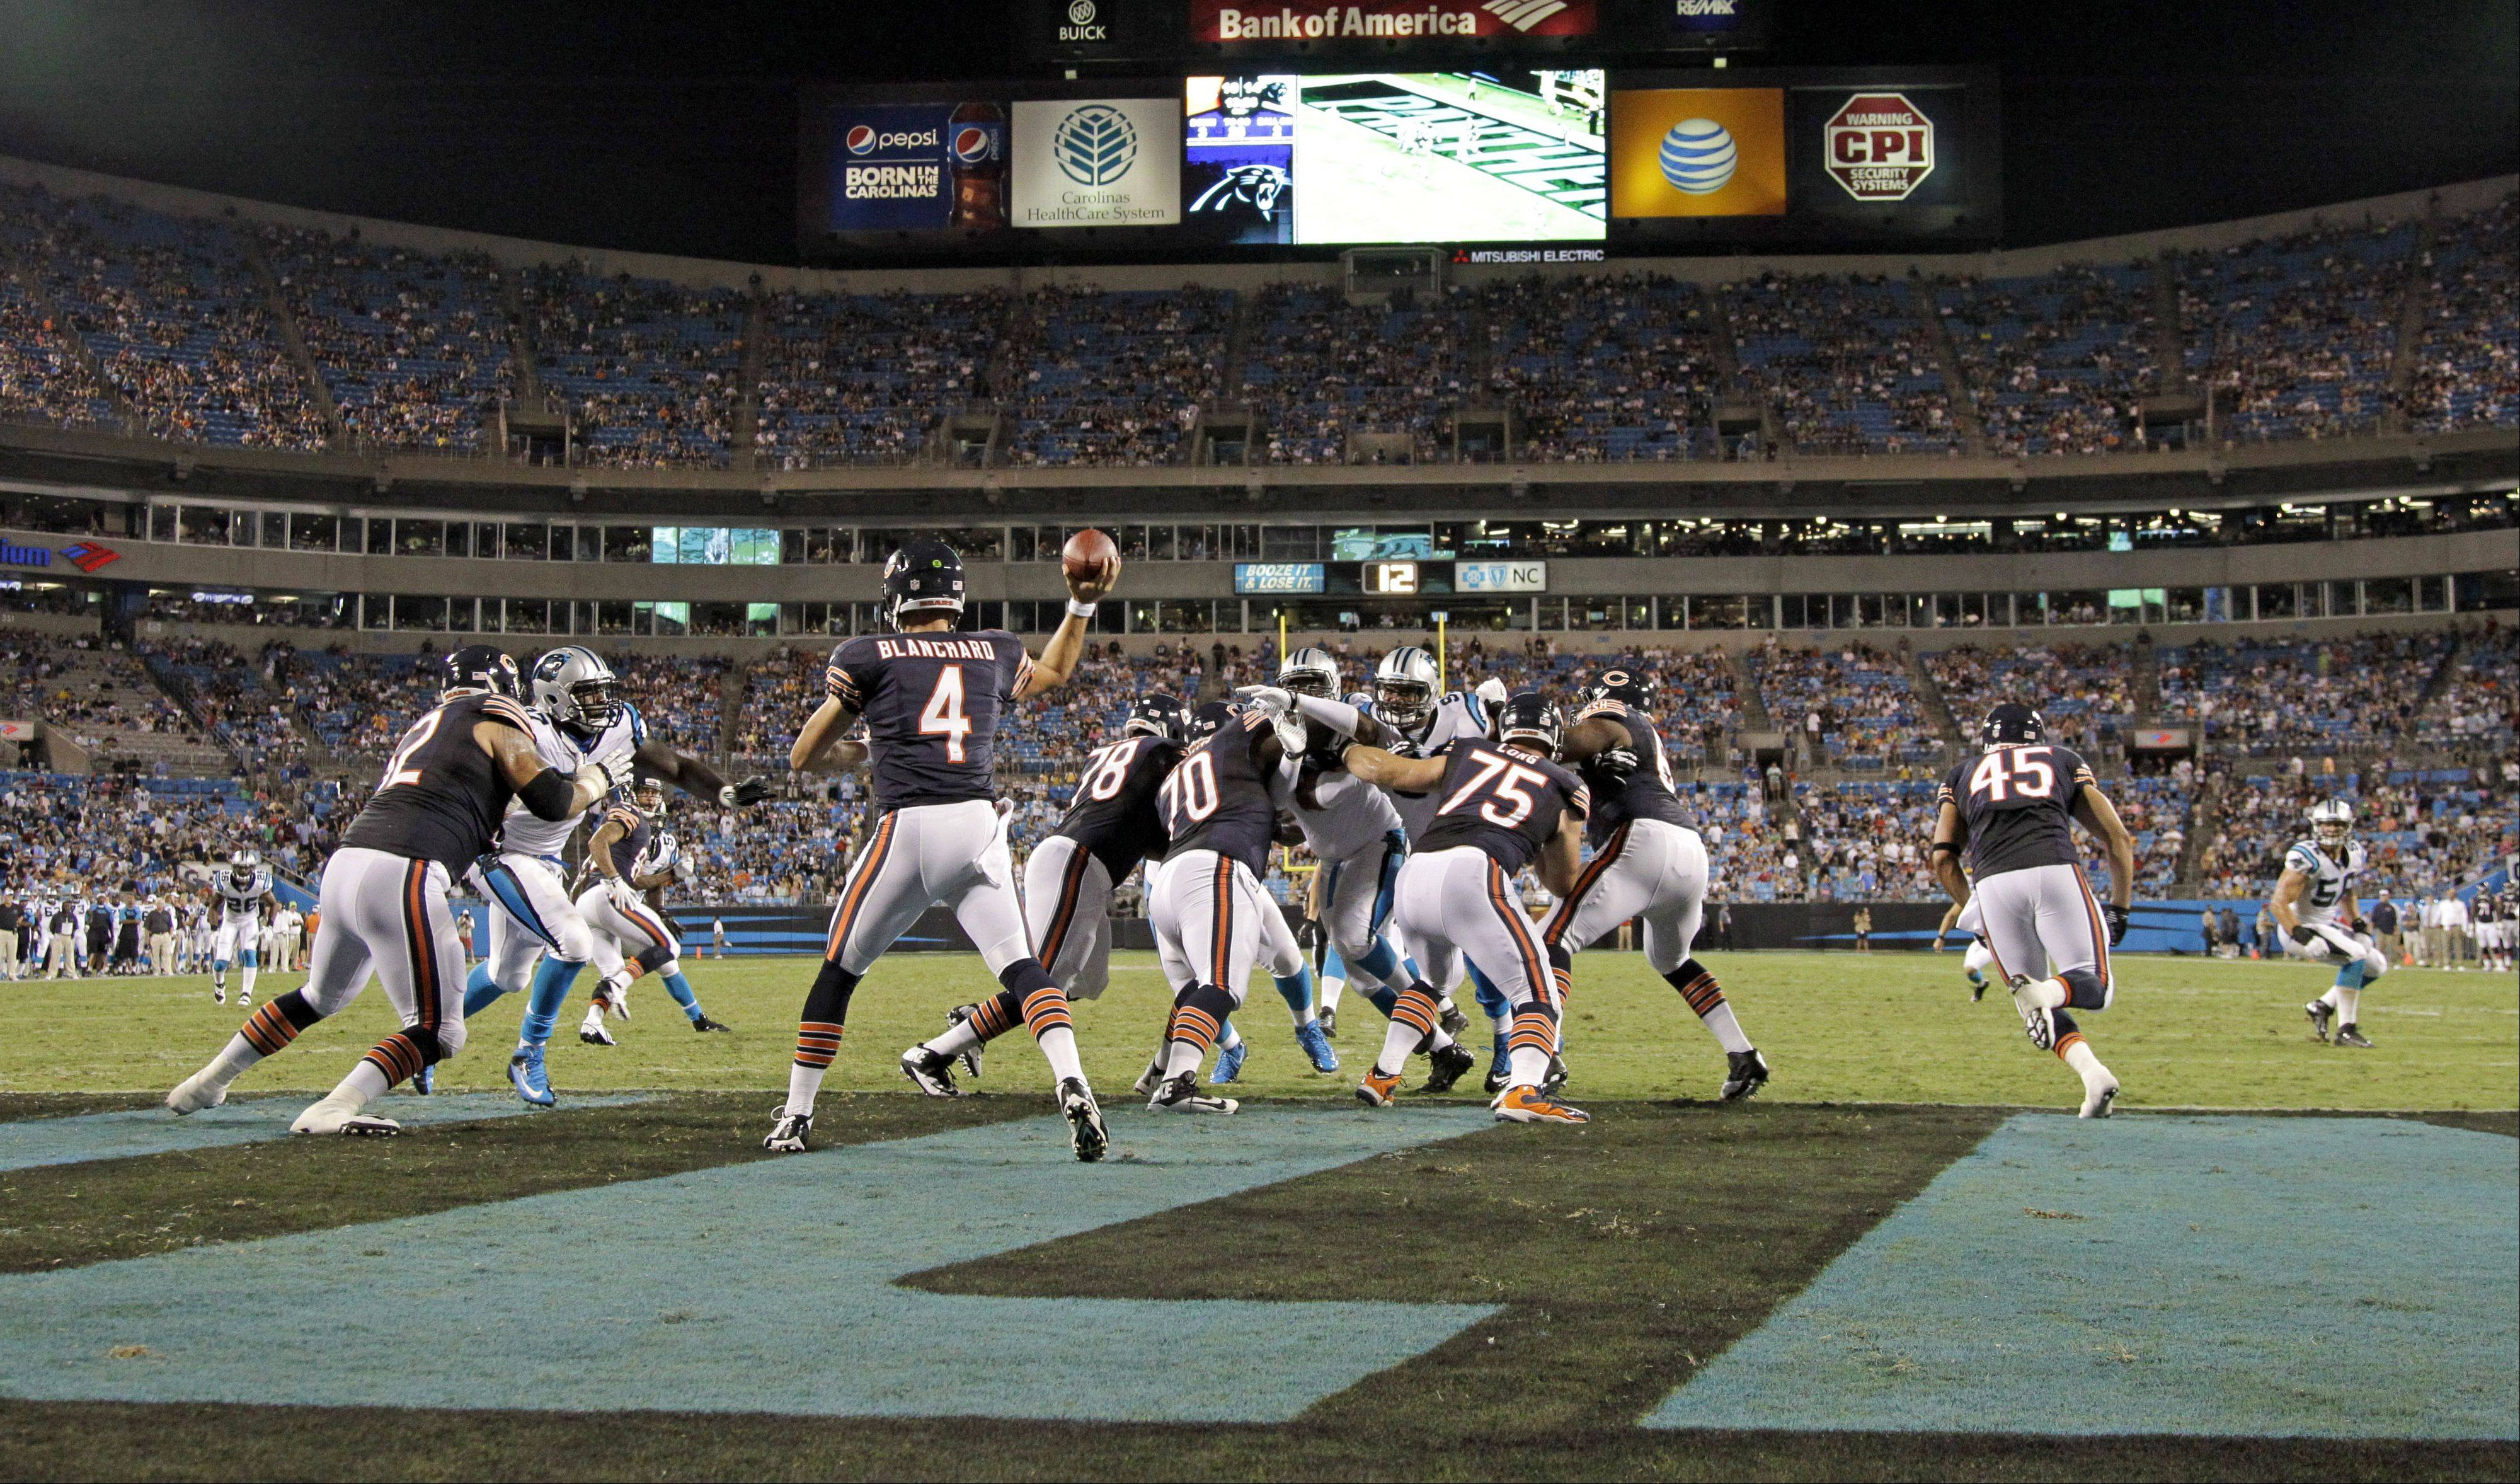 Chicago Bears' Matt Blanchard (4) throws a pass against the Carolina Panthers during the second half of a preseason NFL football game in Charlotte, N.C., Friday, Aug. 9, 2013.